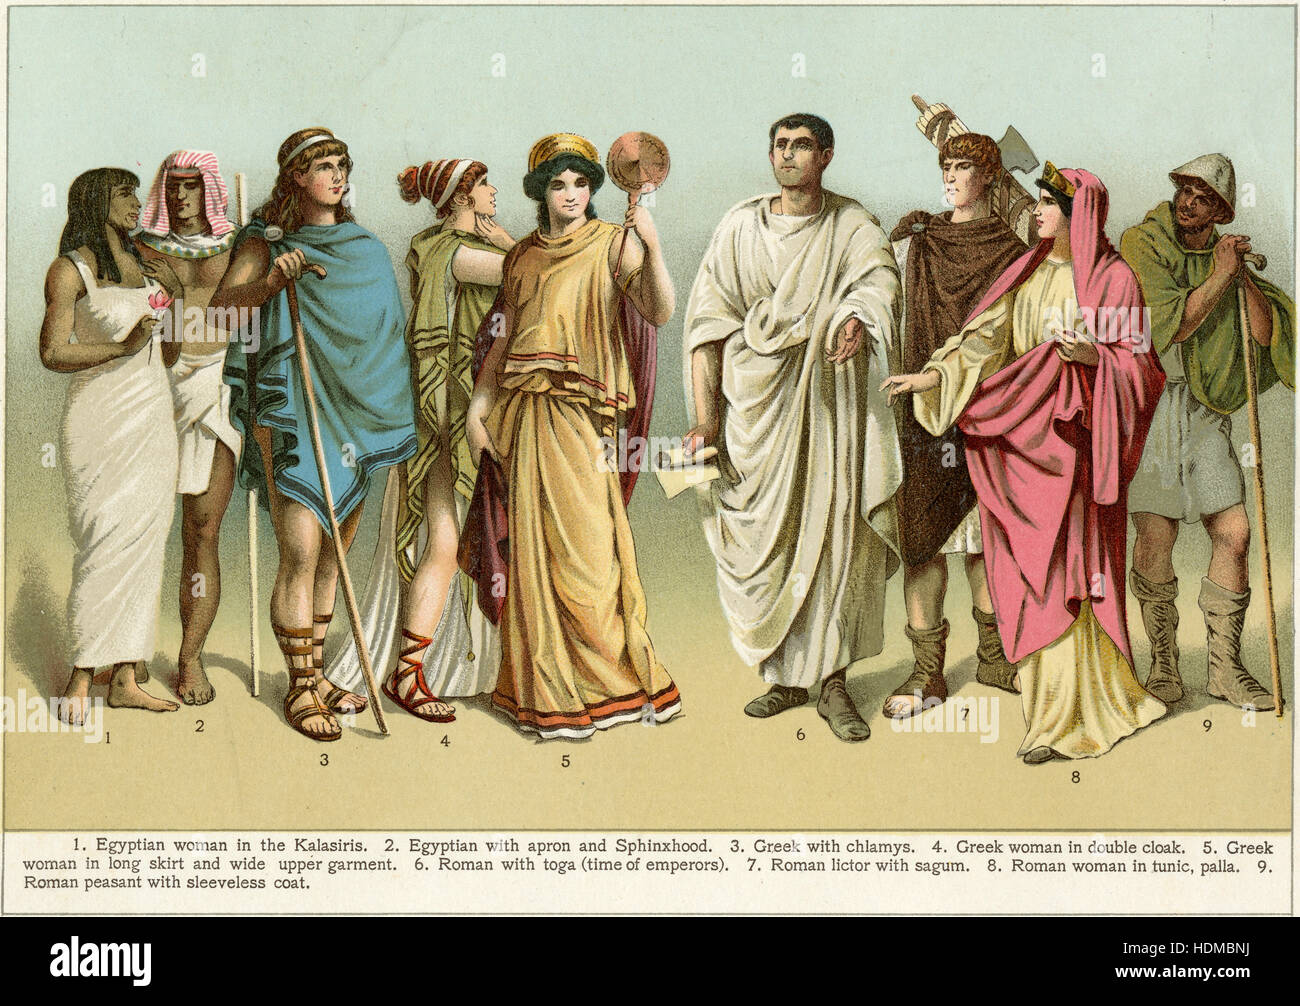 ancient roman clothes stock photos u0026 ancient roman clothes stock